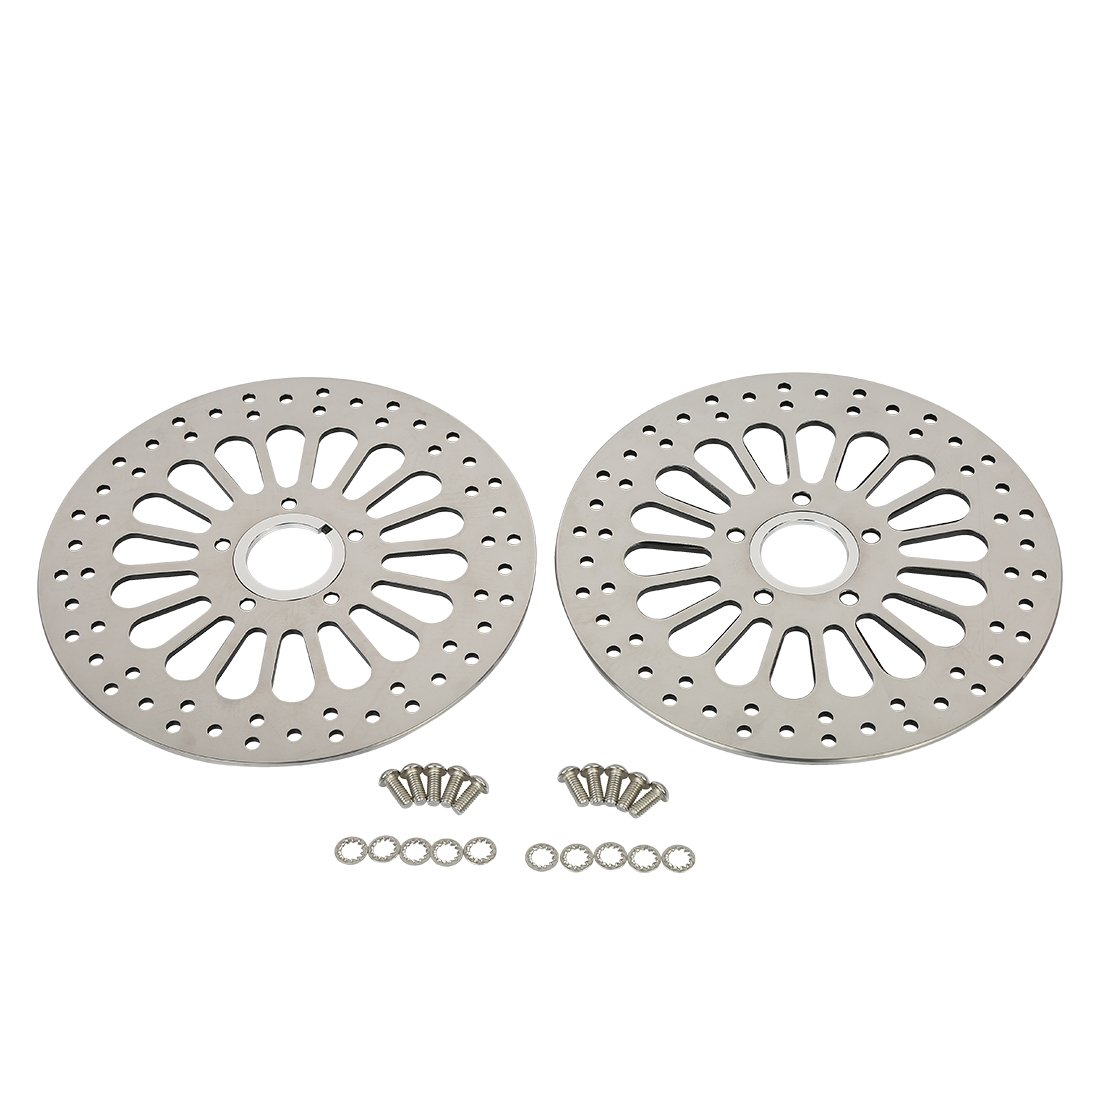 SHARKROAD 11.5'' Brake Rotors Front & Rear High Polished SS Disc For 08-13 Harley Touring